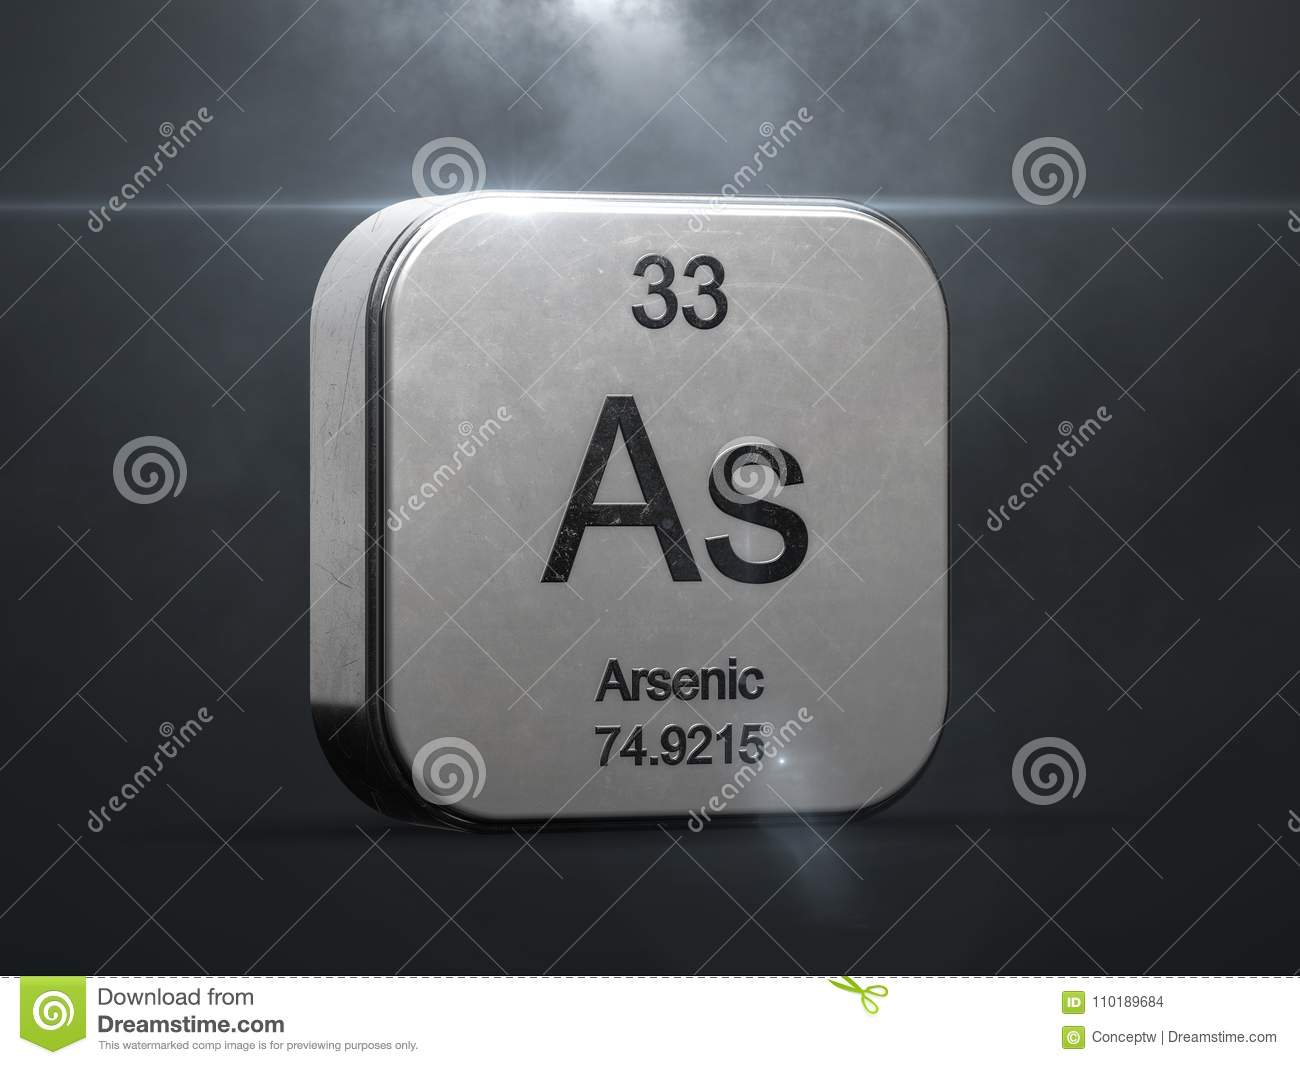 Arsenic element from the periodic table